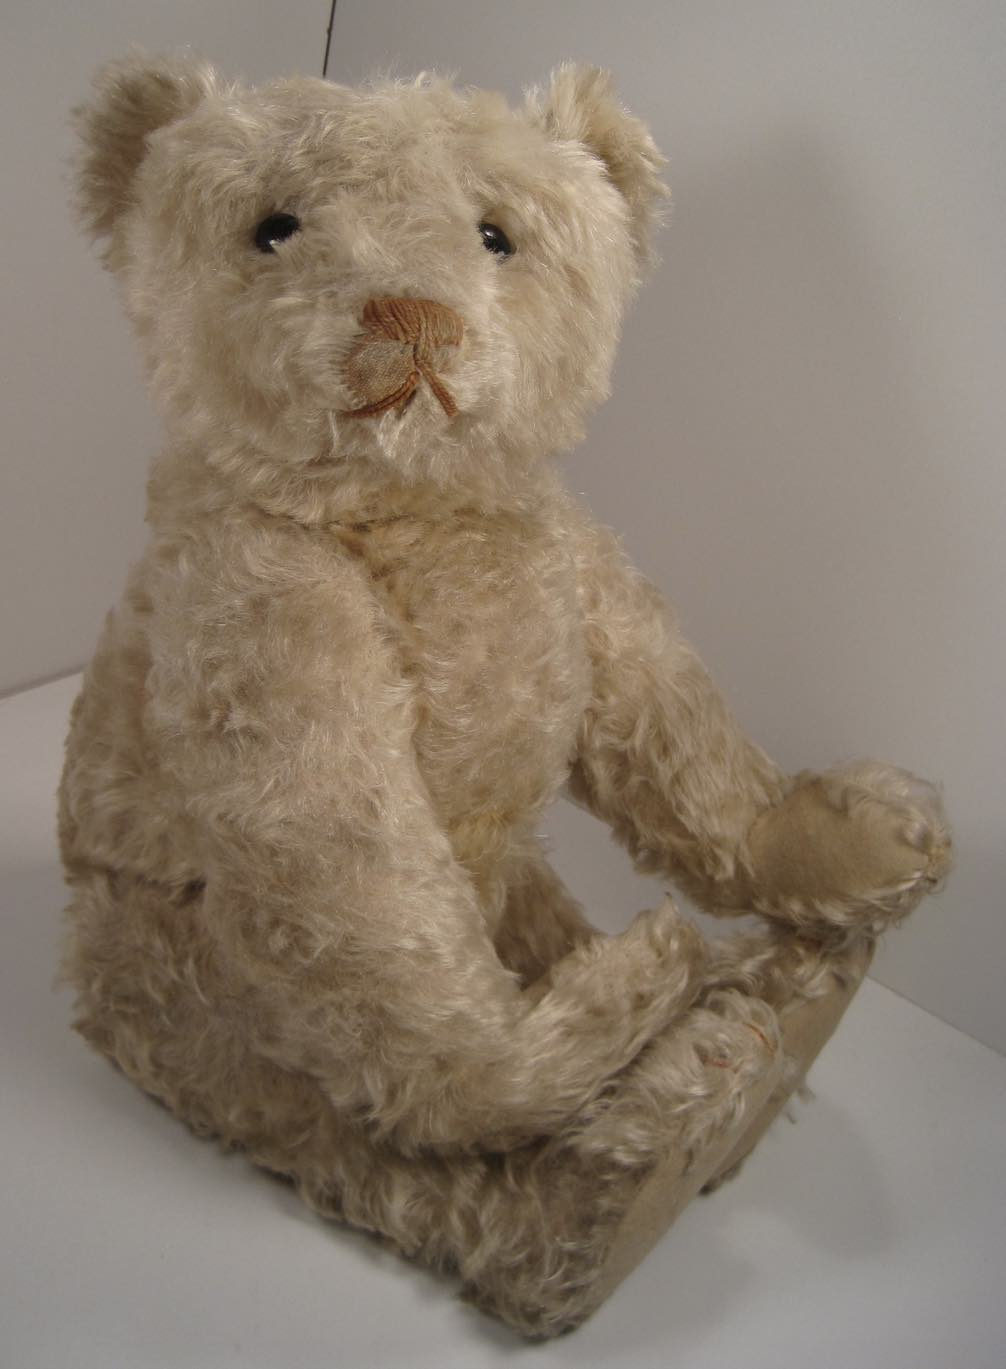 Steiff Bear Rare Black Mohair Vintage Glass Eyes Jointed Miniature Knopf Button Cleaning The Oral Cavity. Bears